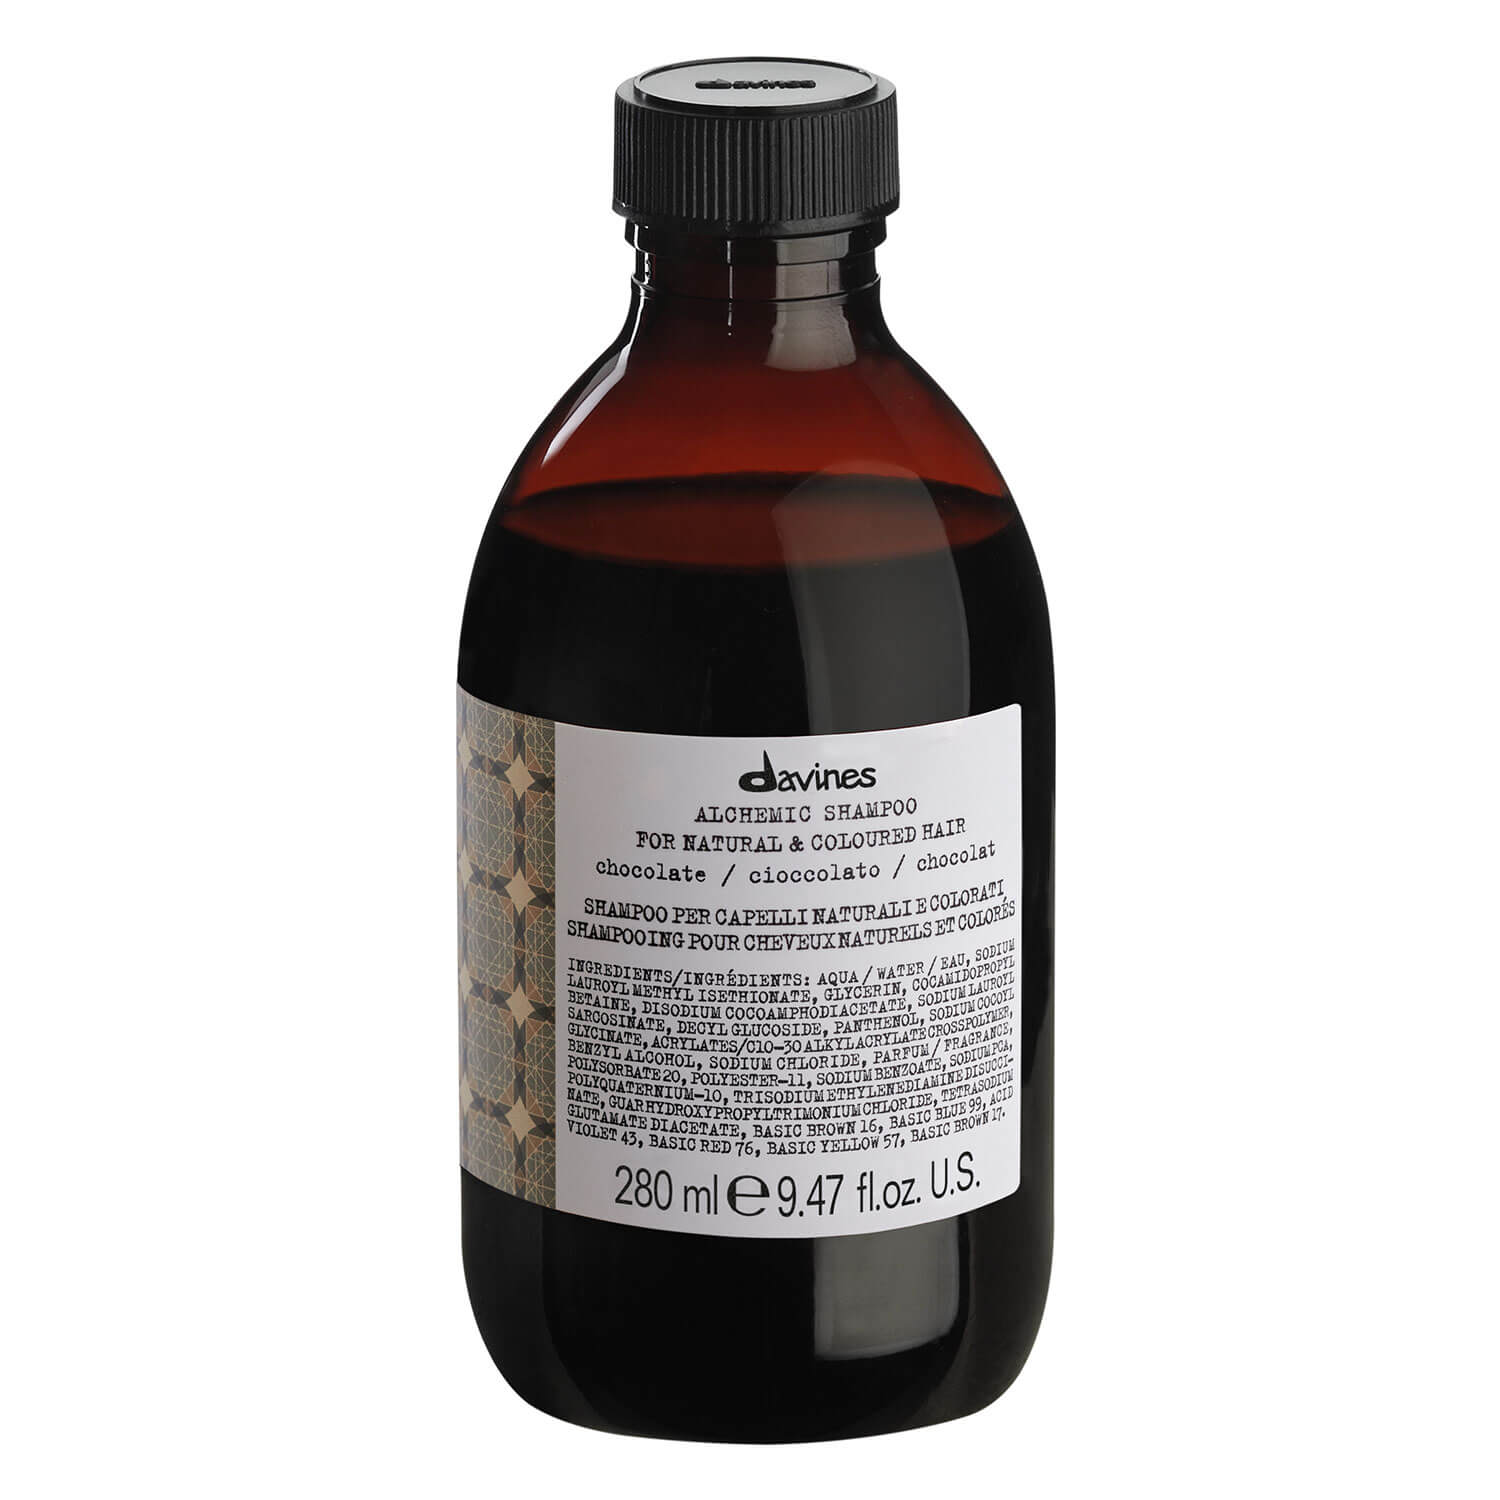 Alchemic - Chocolate Shampoo